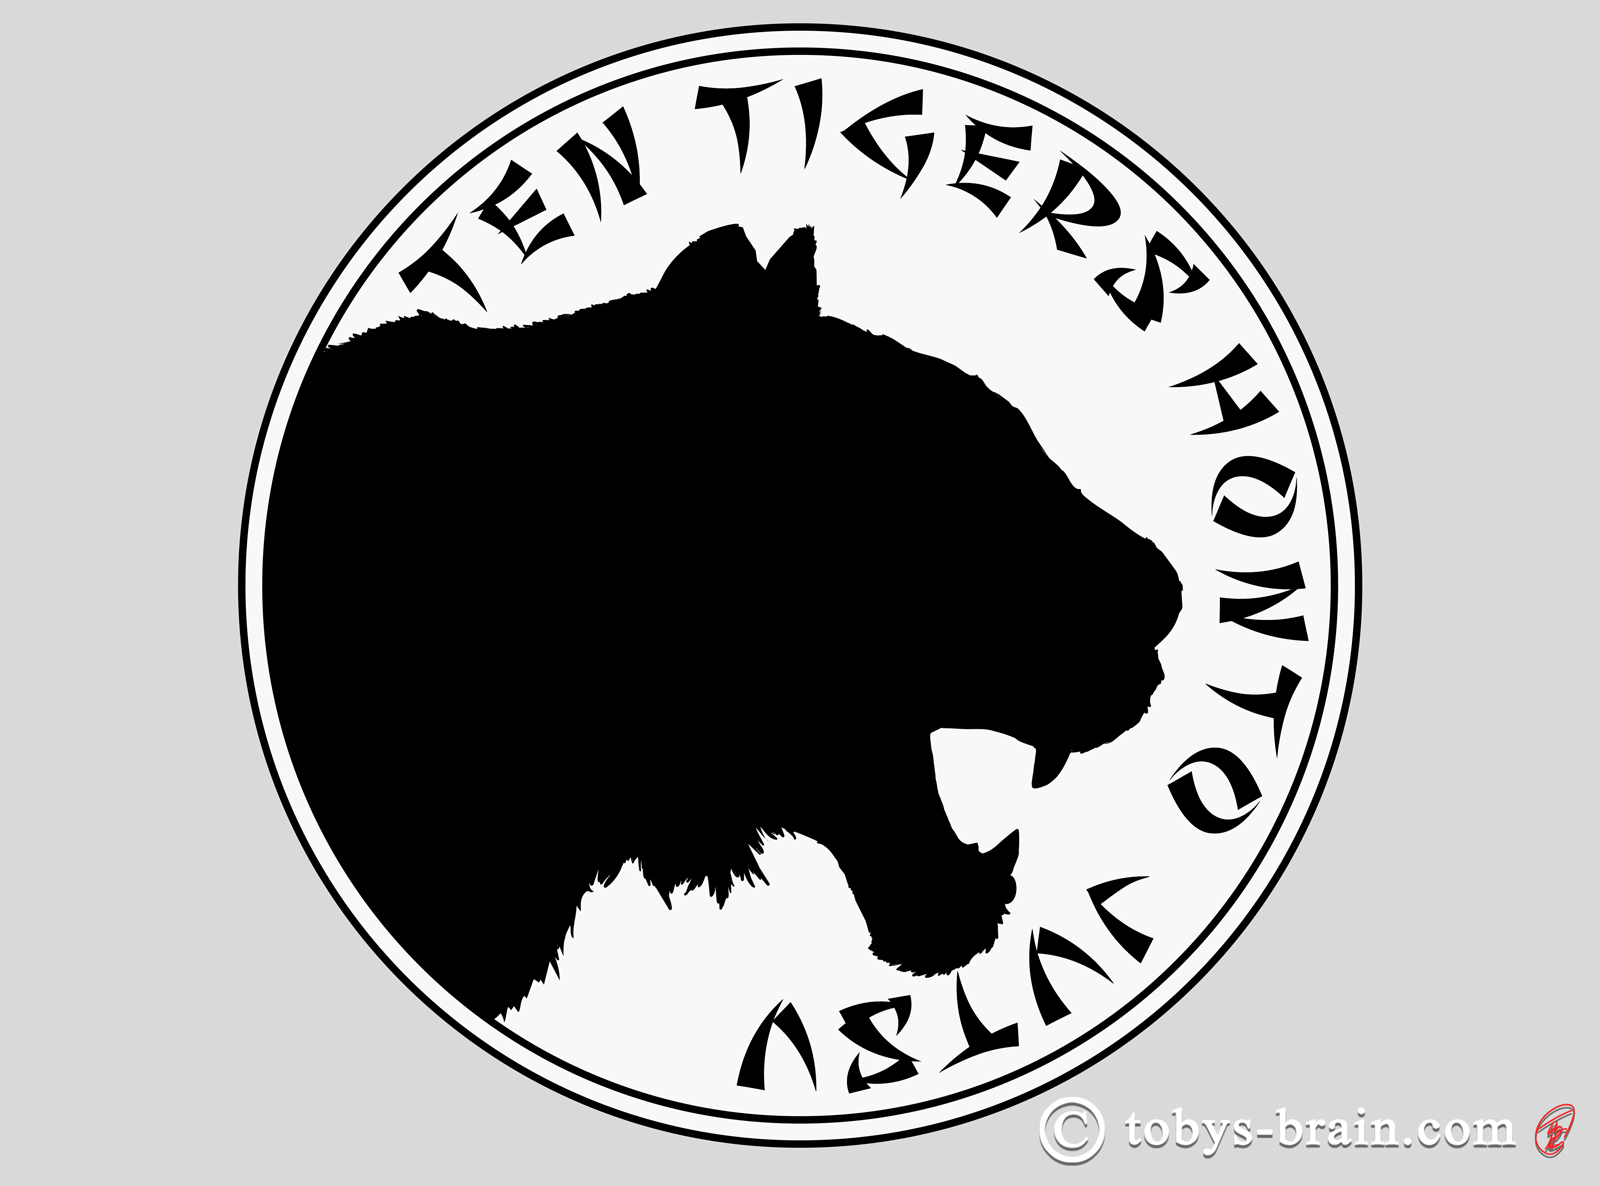 I thought the tiger profile would work great as a silhouette, especially for printing on shirts. One color printing is much cheaper than even two color. Plus, it's kind of reminiscent of the Thunder Cats, and who doesn't love the Thunder Cats?